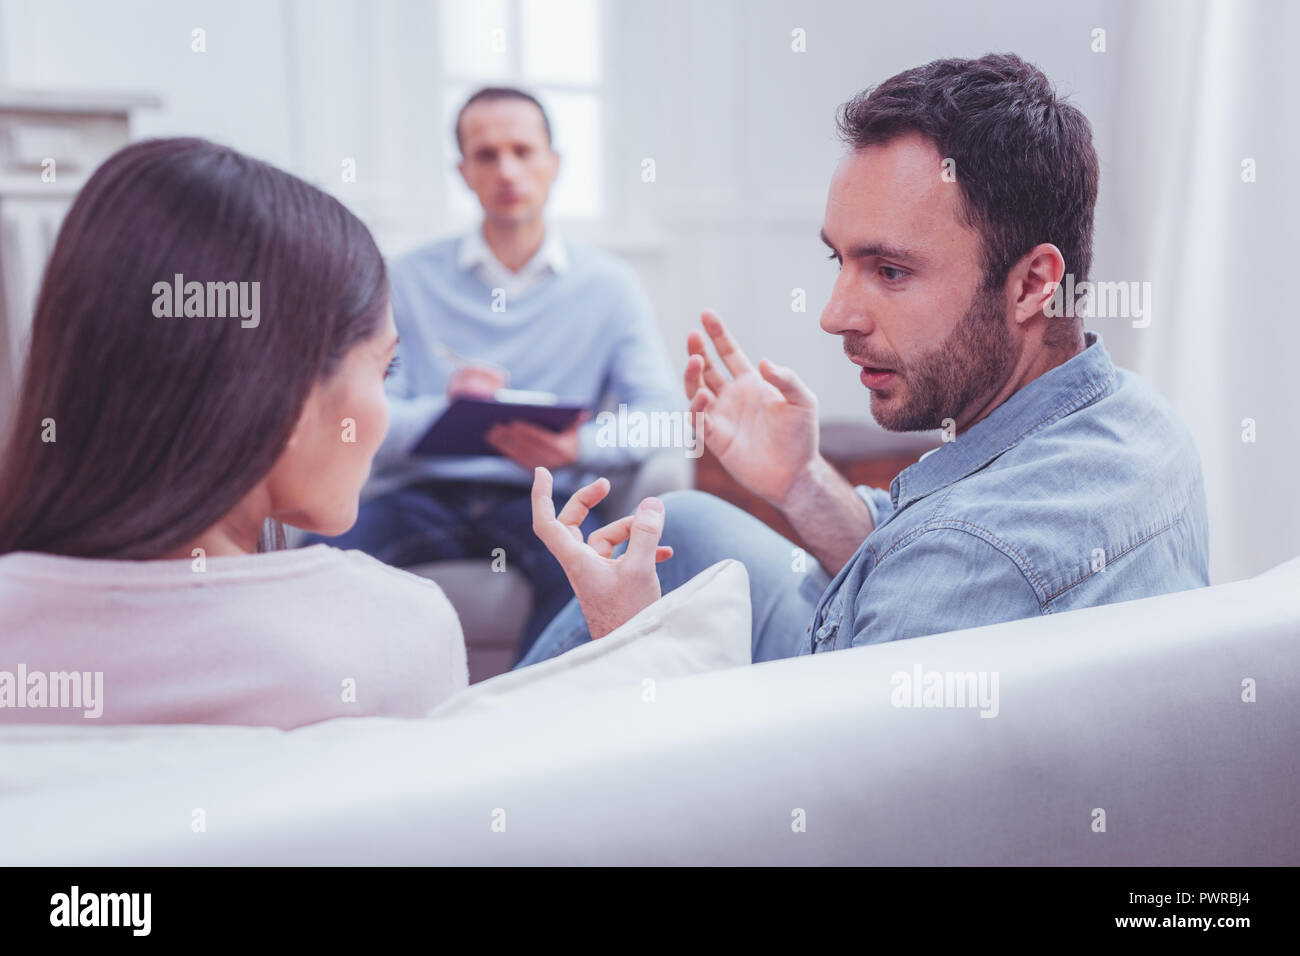 Emotional couple discussing relationships during psychological therapy - Stock Image